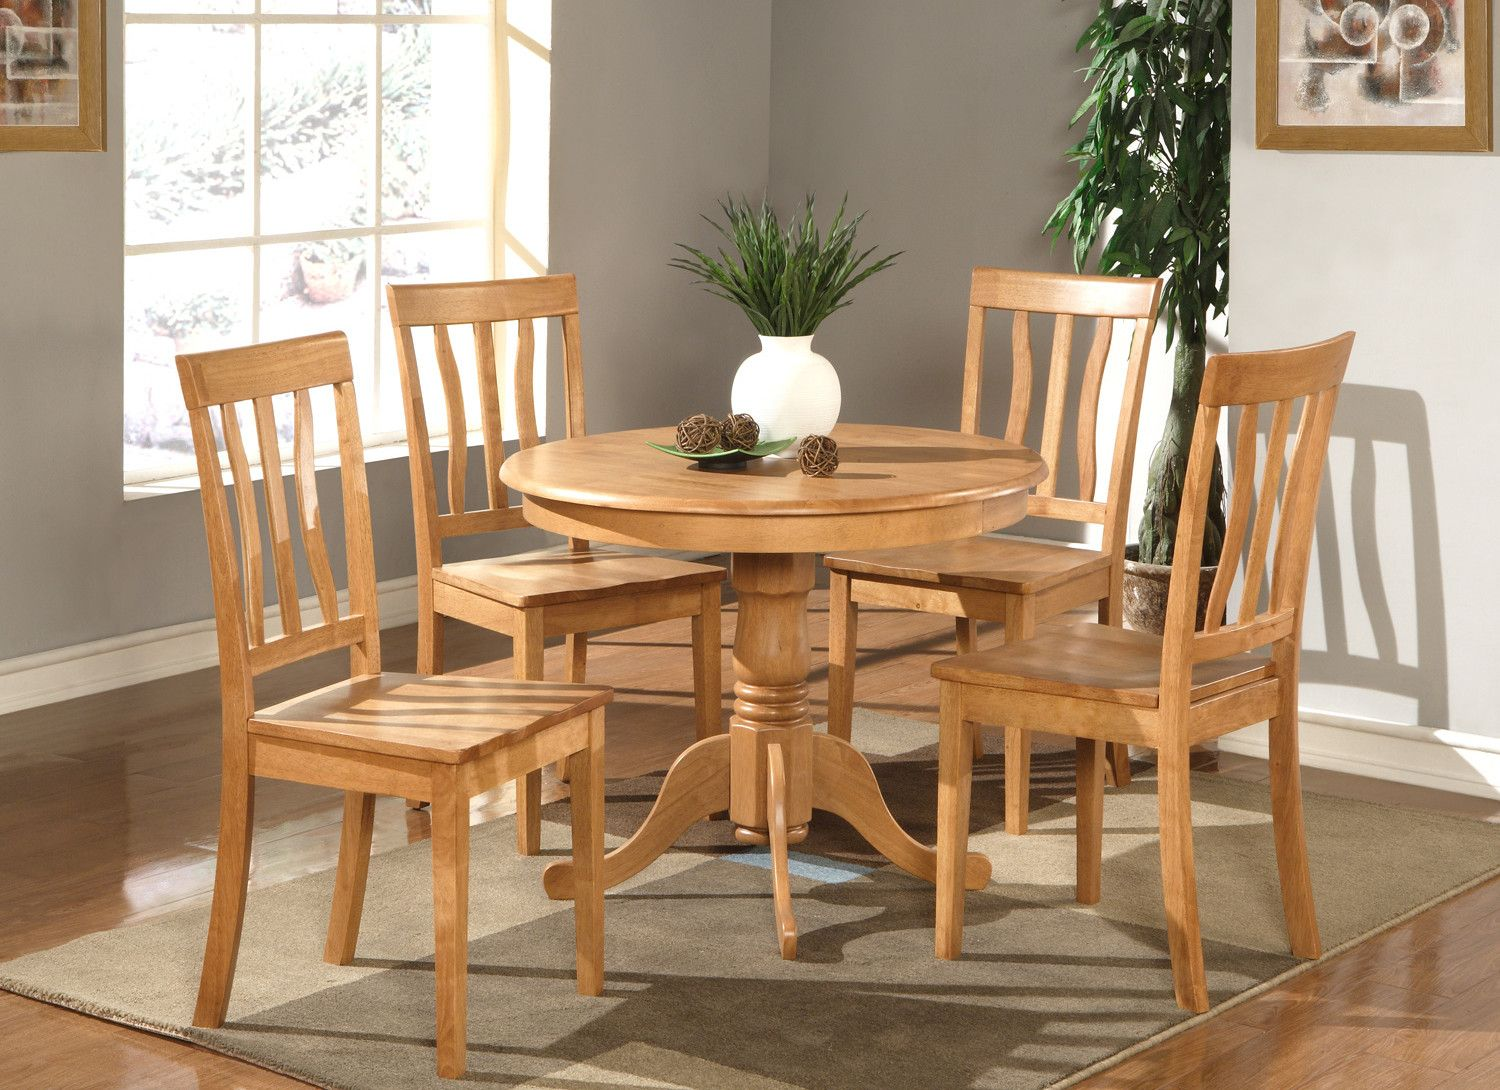 Woim Antique 3 Piece Dining Set Round Kitchen Table Kitchen Table Settings Round Wood Kitchen Table